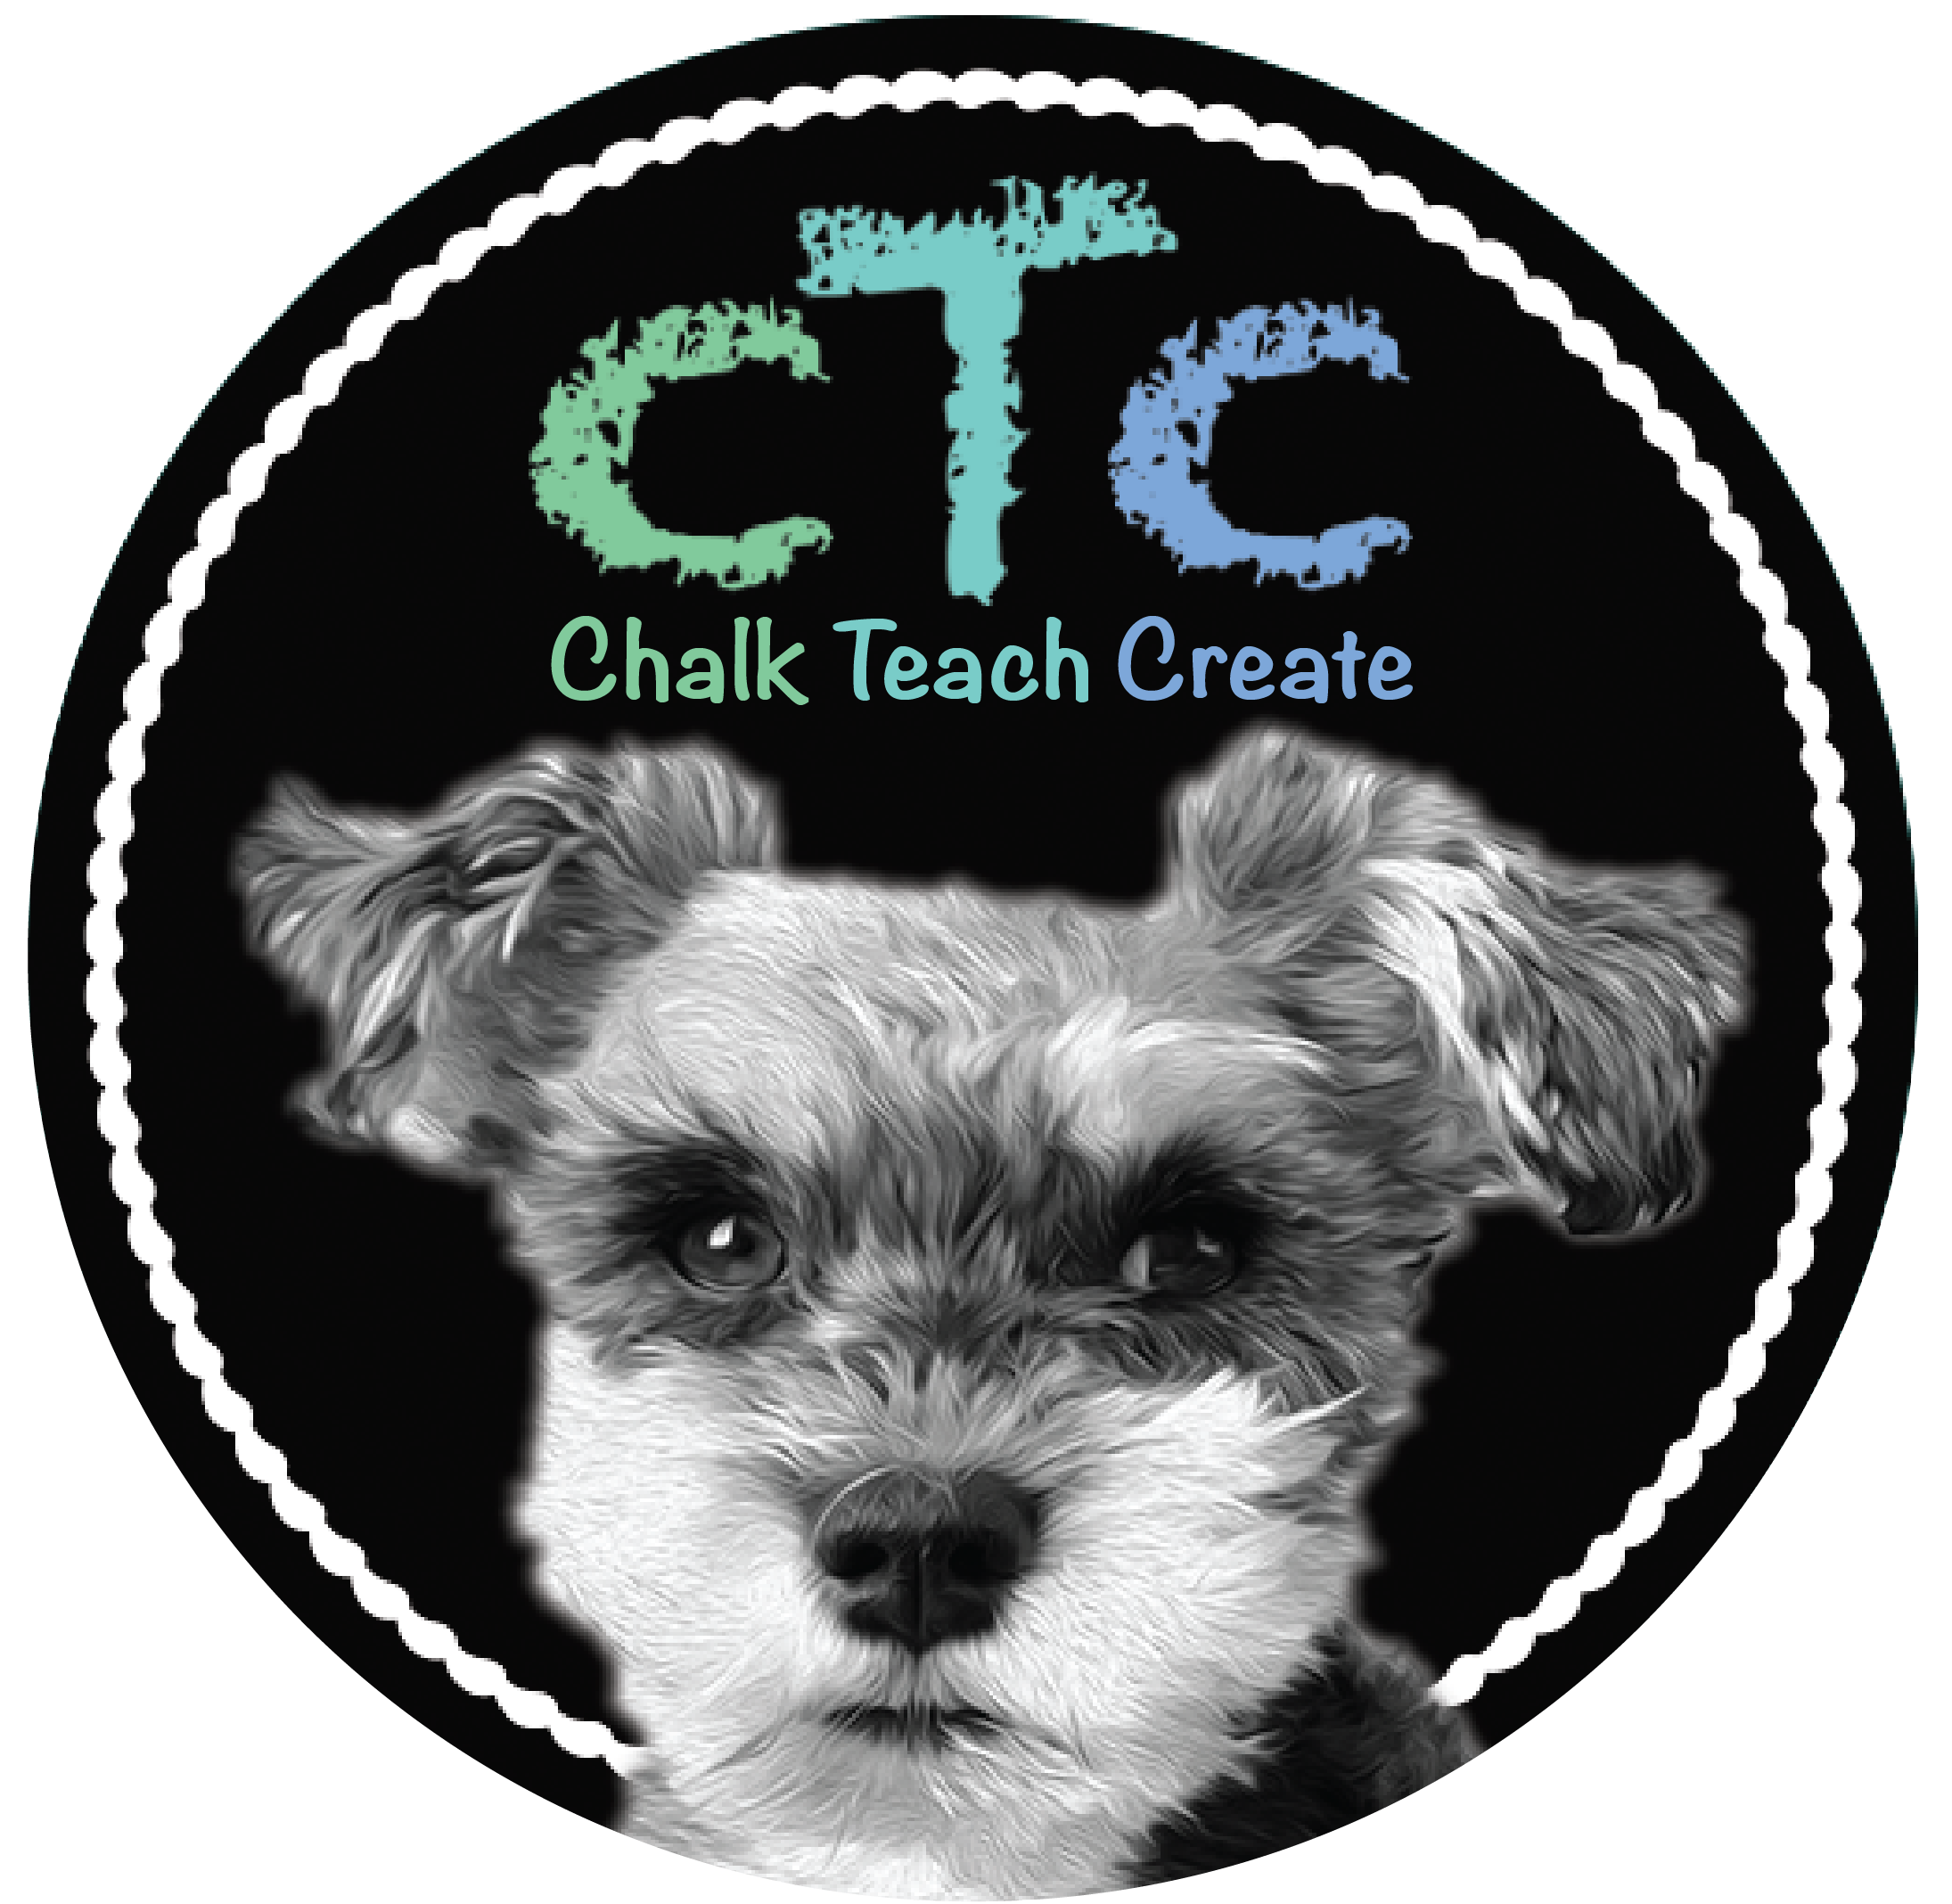 ctc-chalkteachcreate-black.png